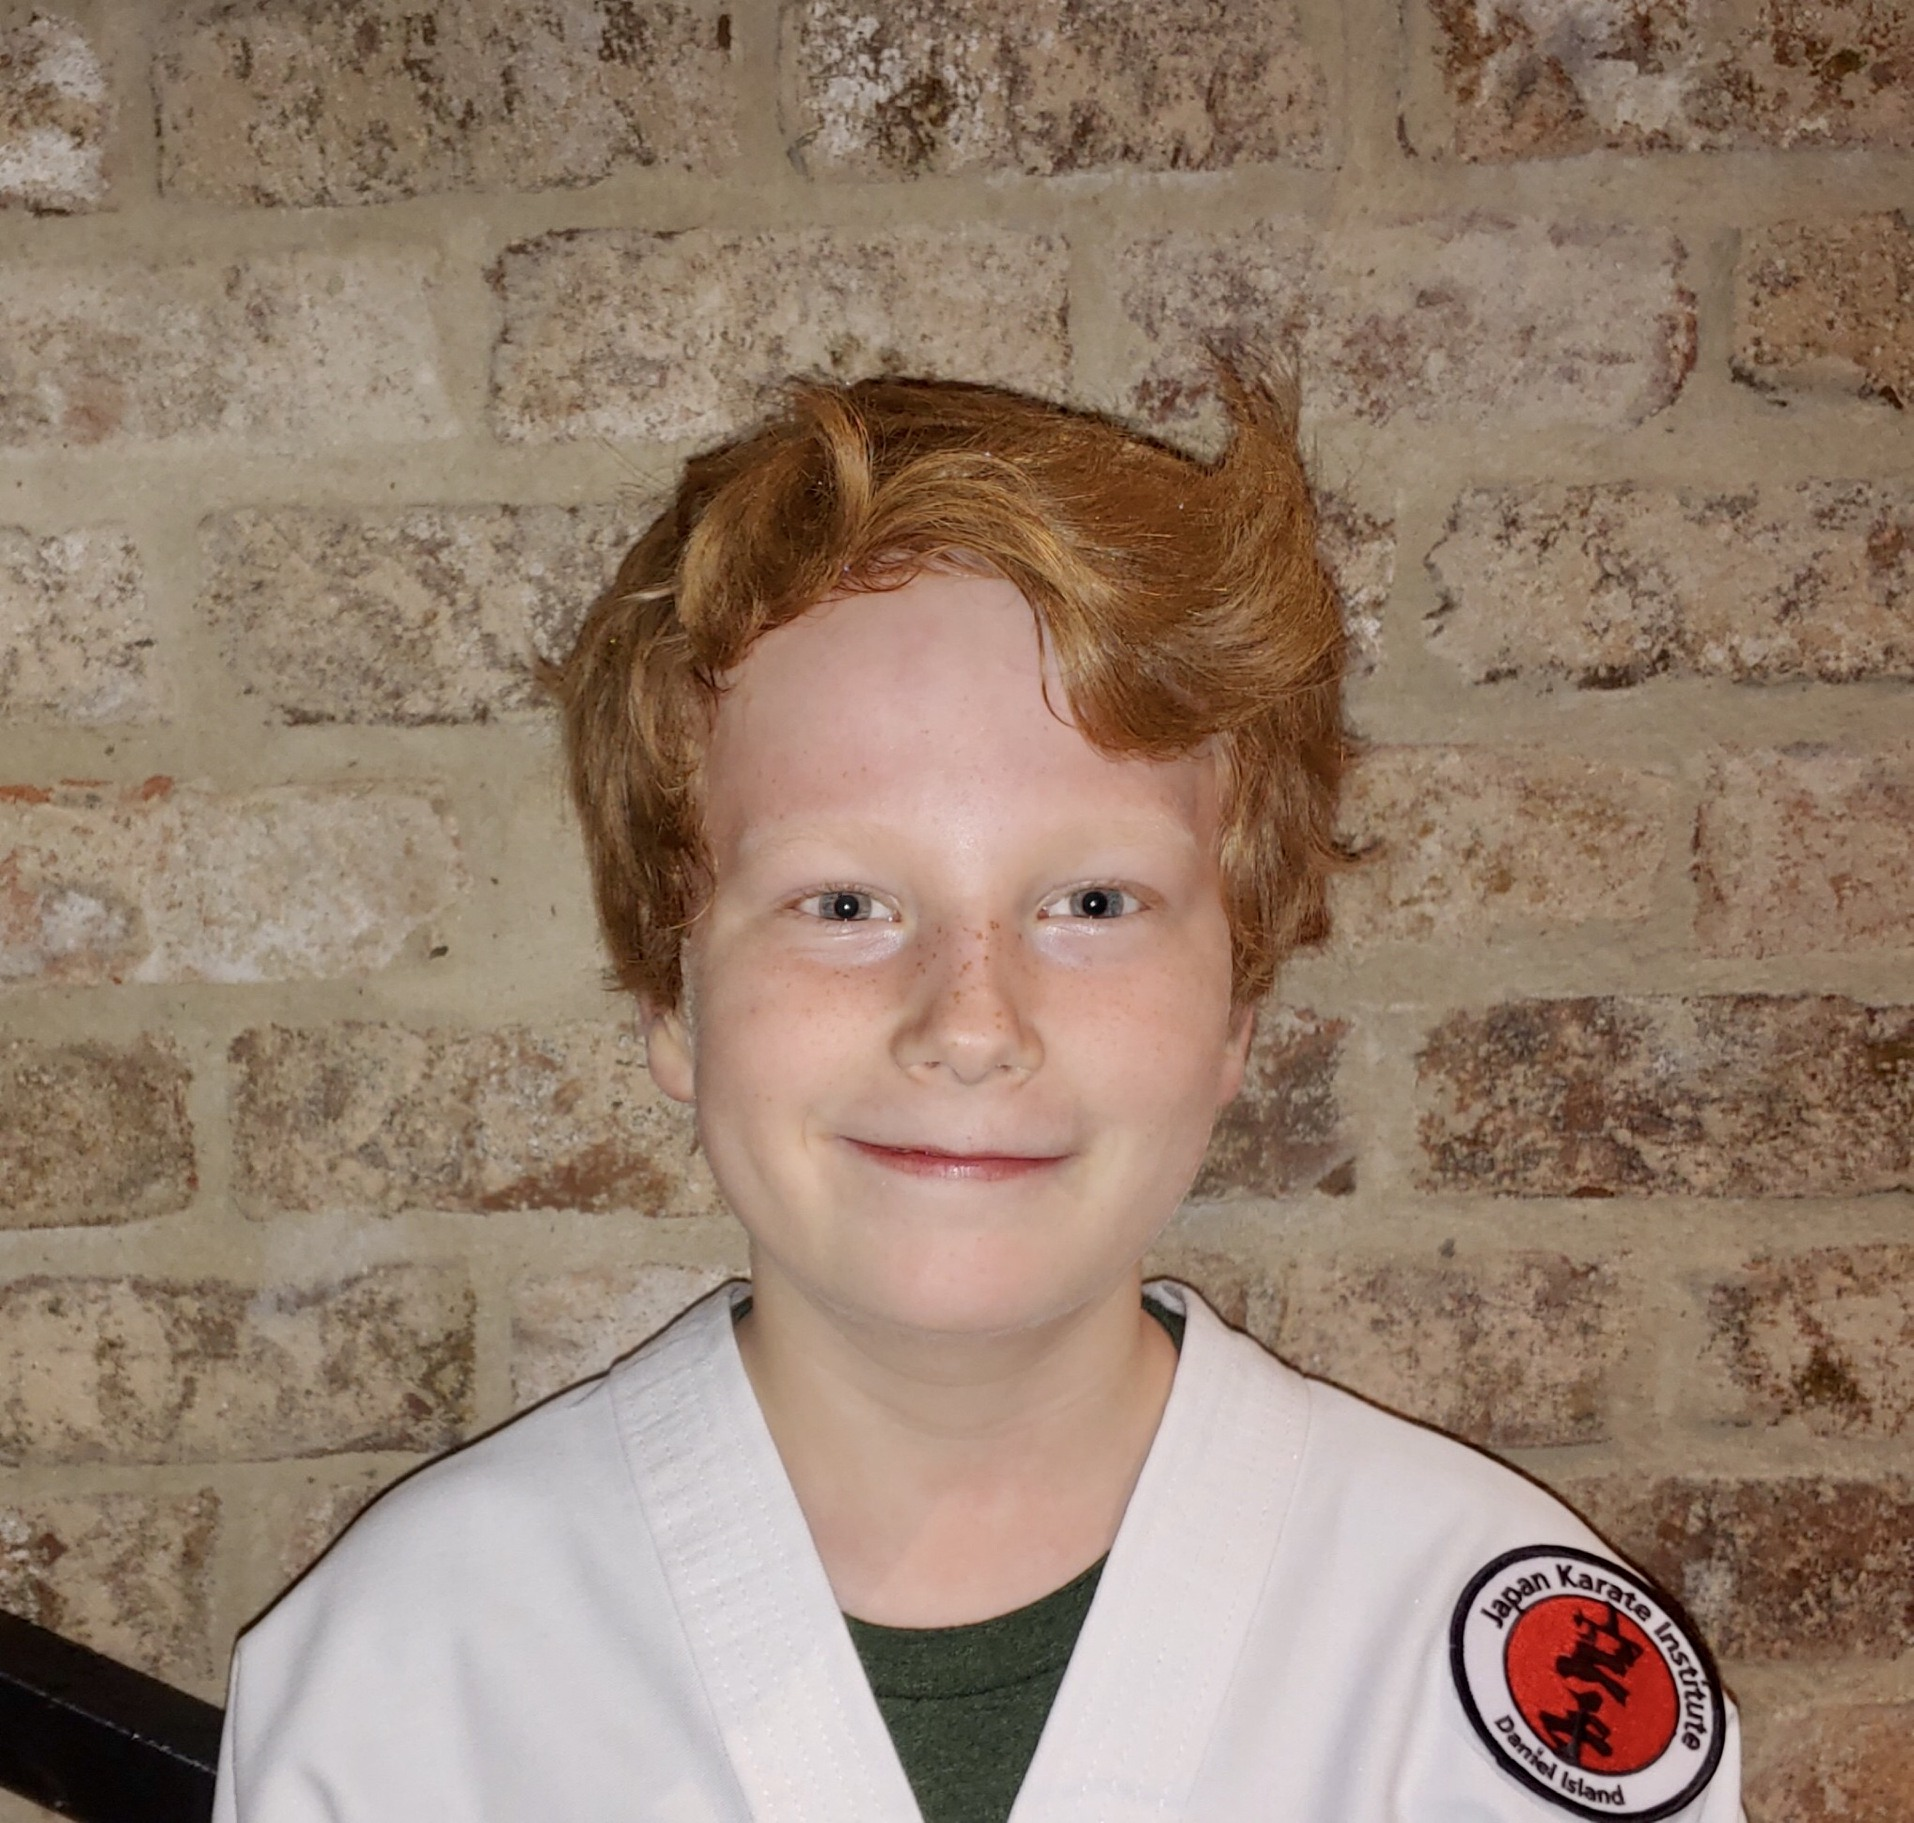 I do Cub Scouts and participate in a lot of events.  Clay, Age 10  Daniel Island